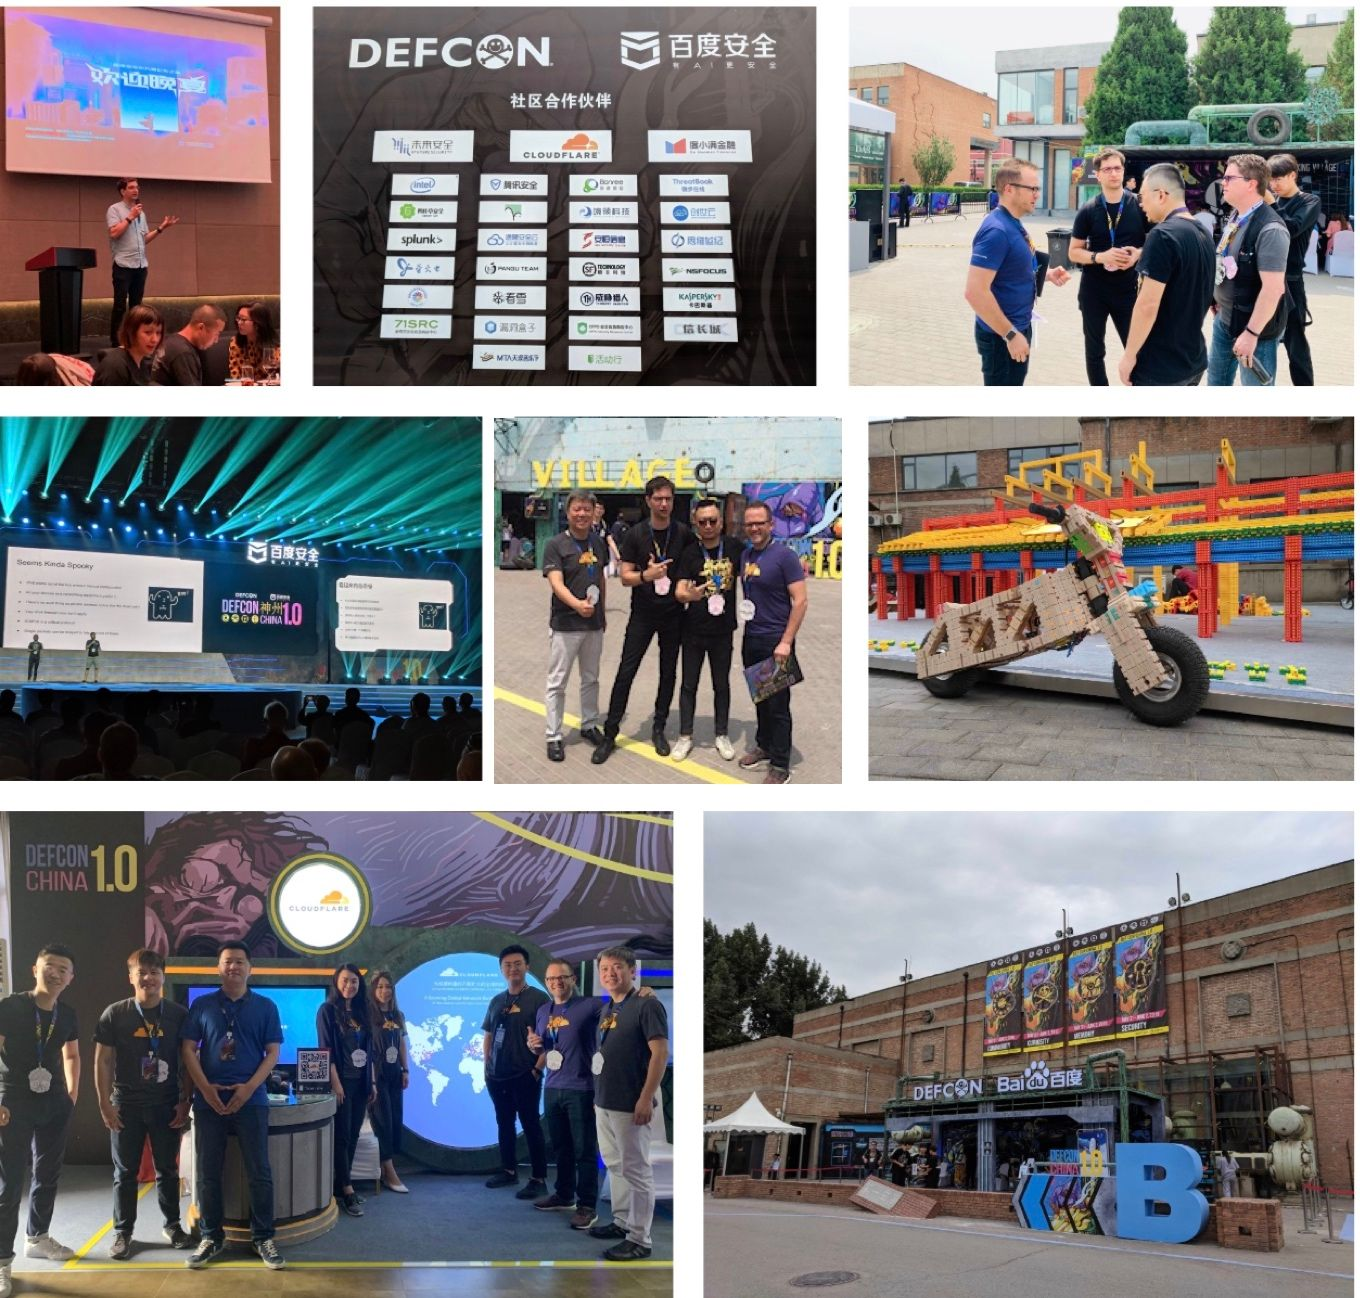 Technology's Promise - Highlights from DEF CON China 1.0